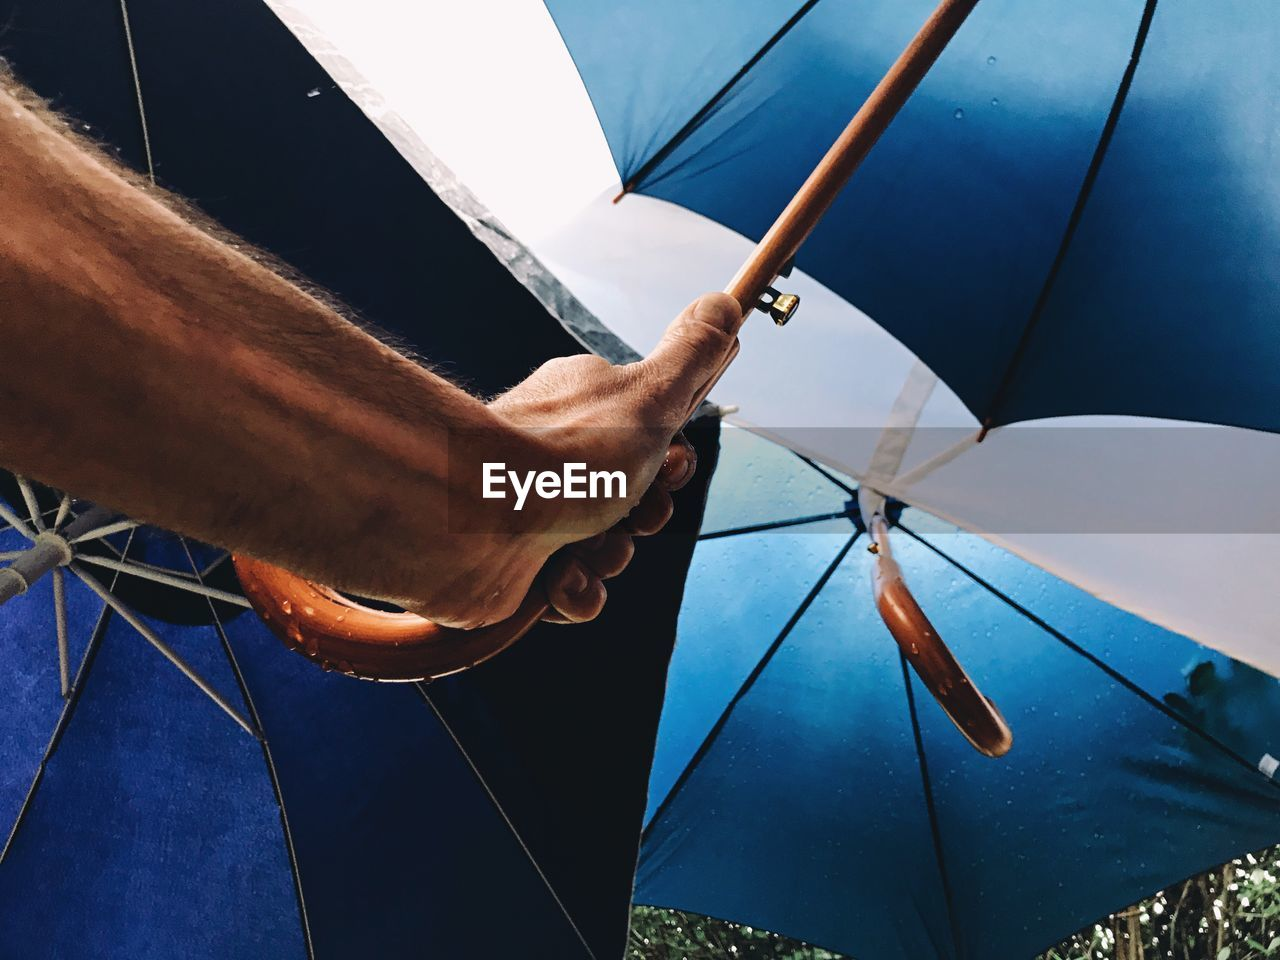 Cropped Image Of Hand Holding Umbrella